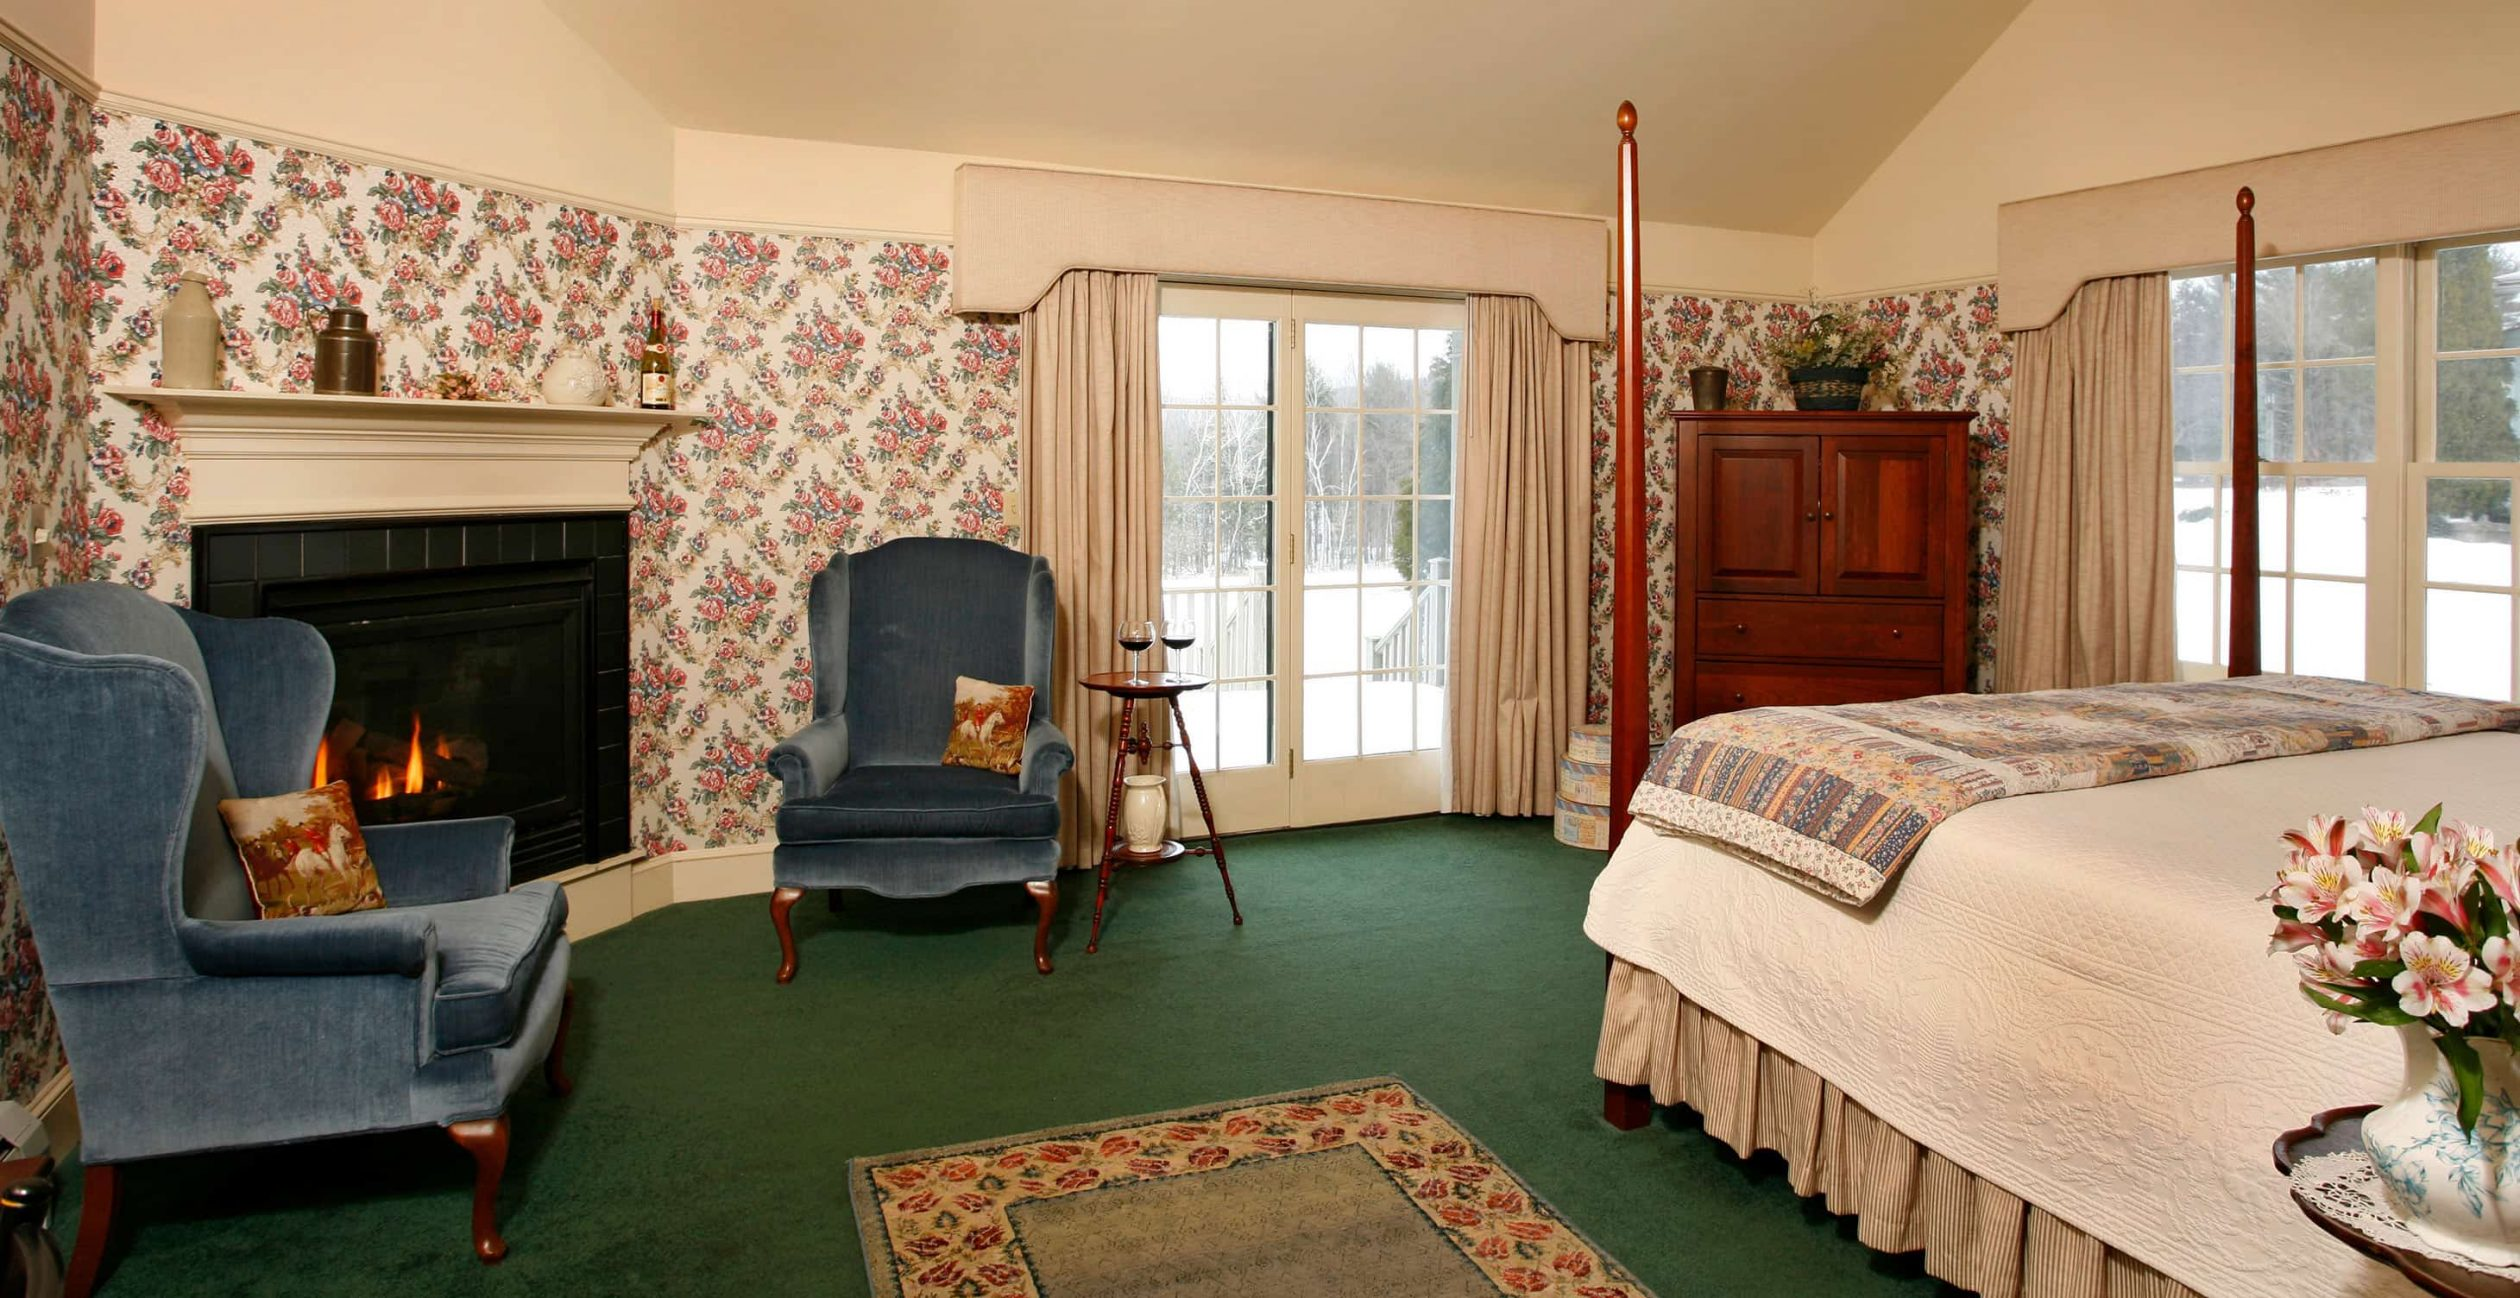 Fireplace with Two chairs and Bed in Room 19